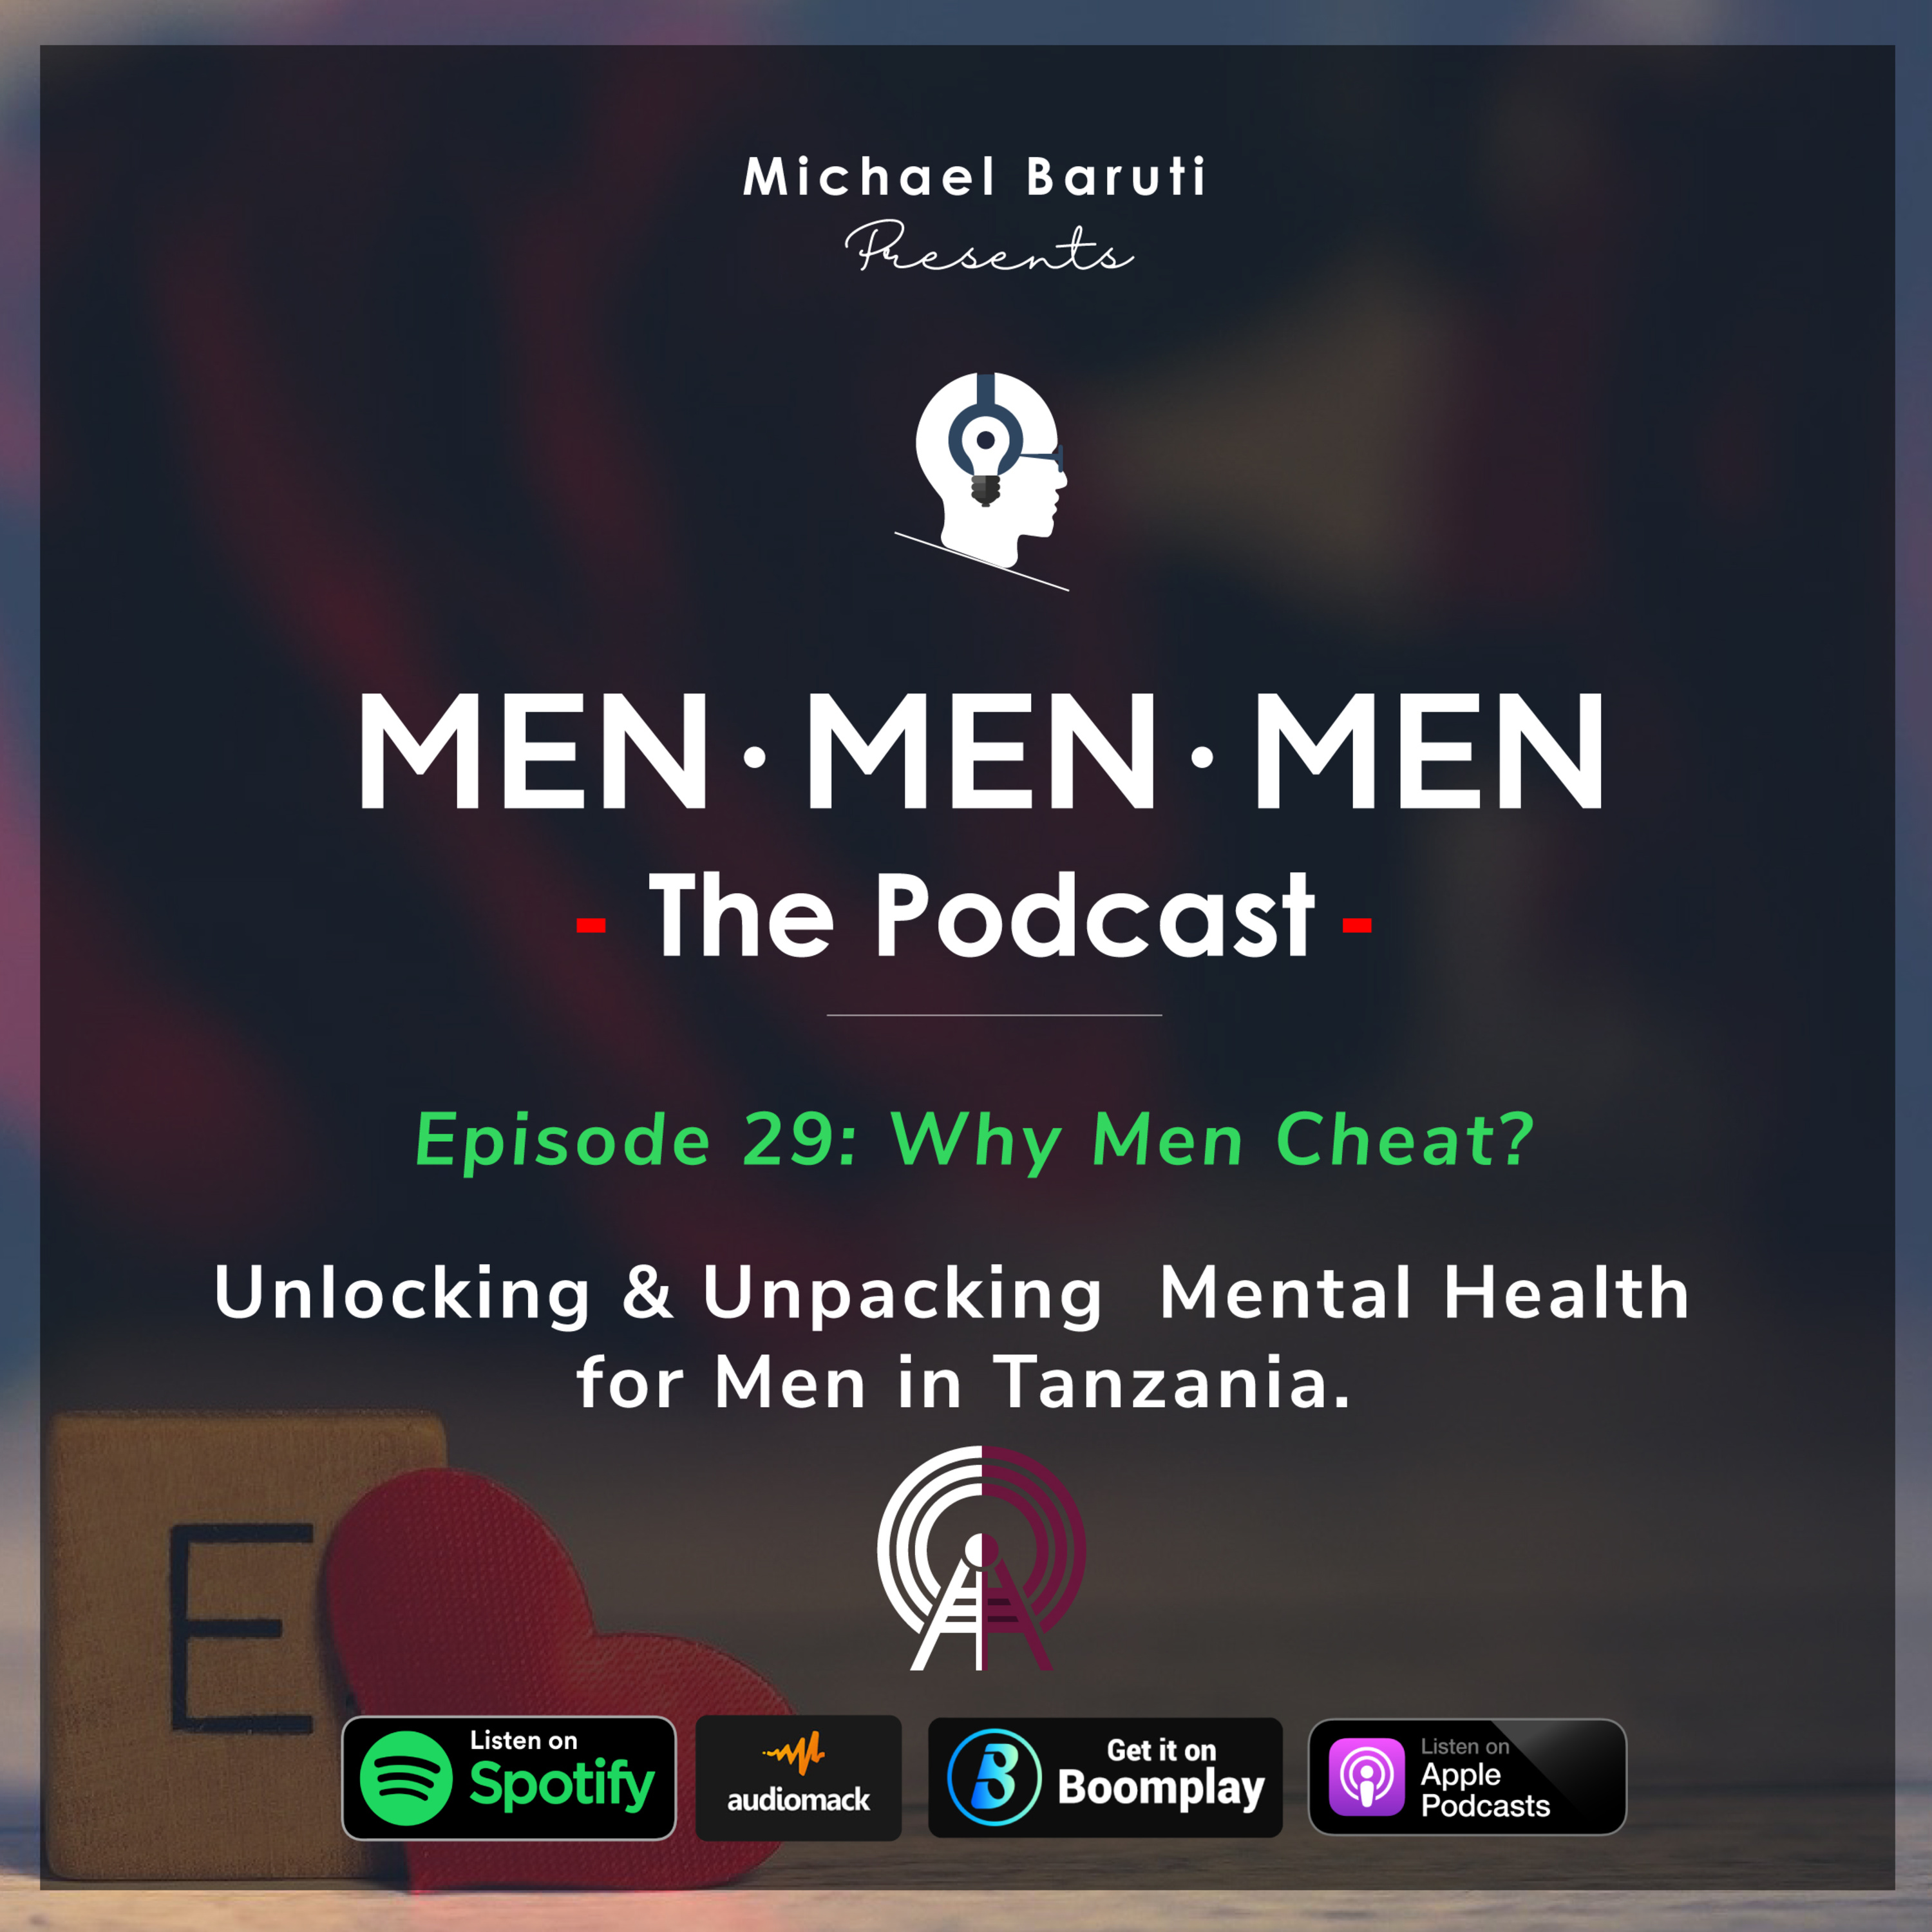 Men The Podcast - Ep 29 - Why men cheat?